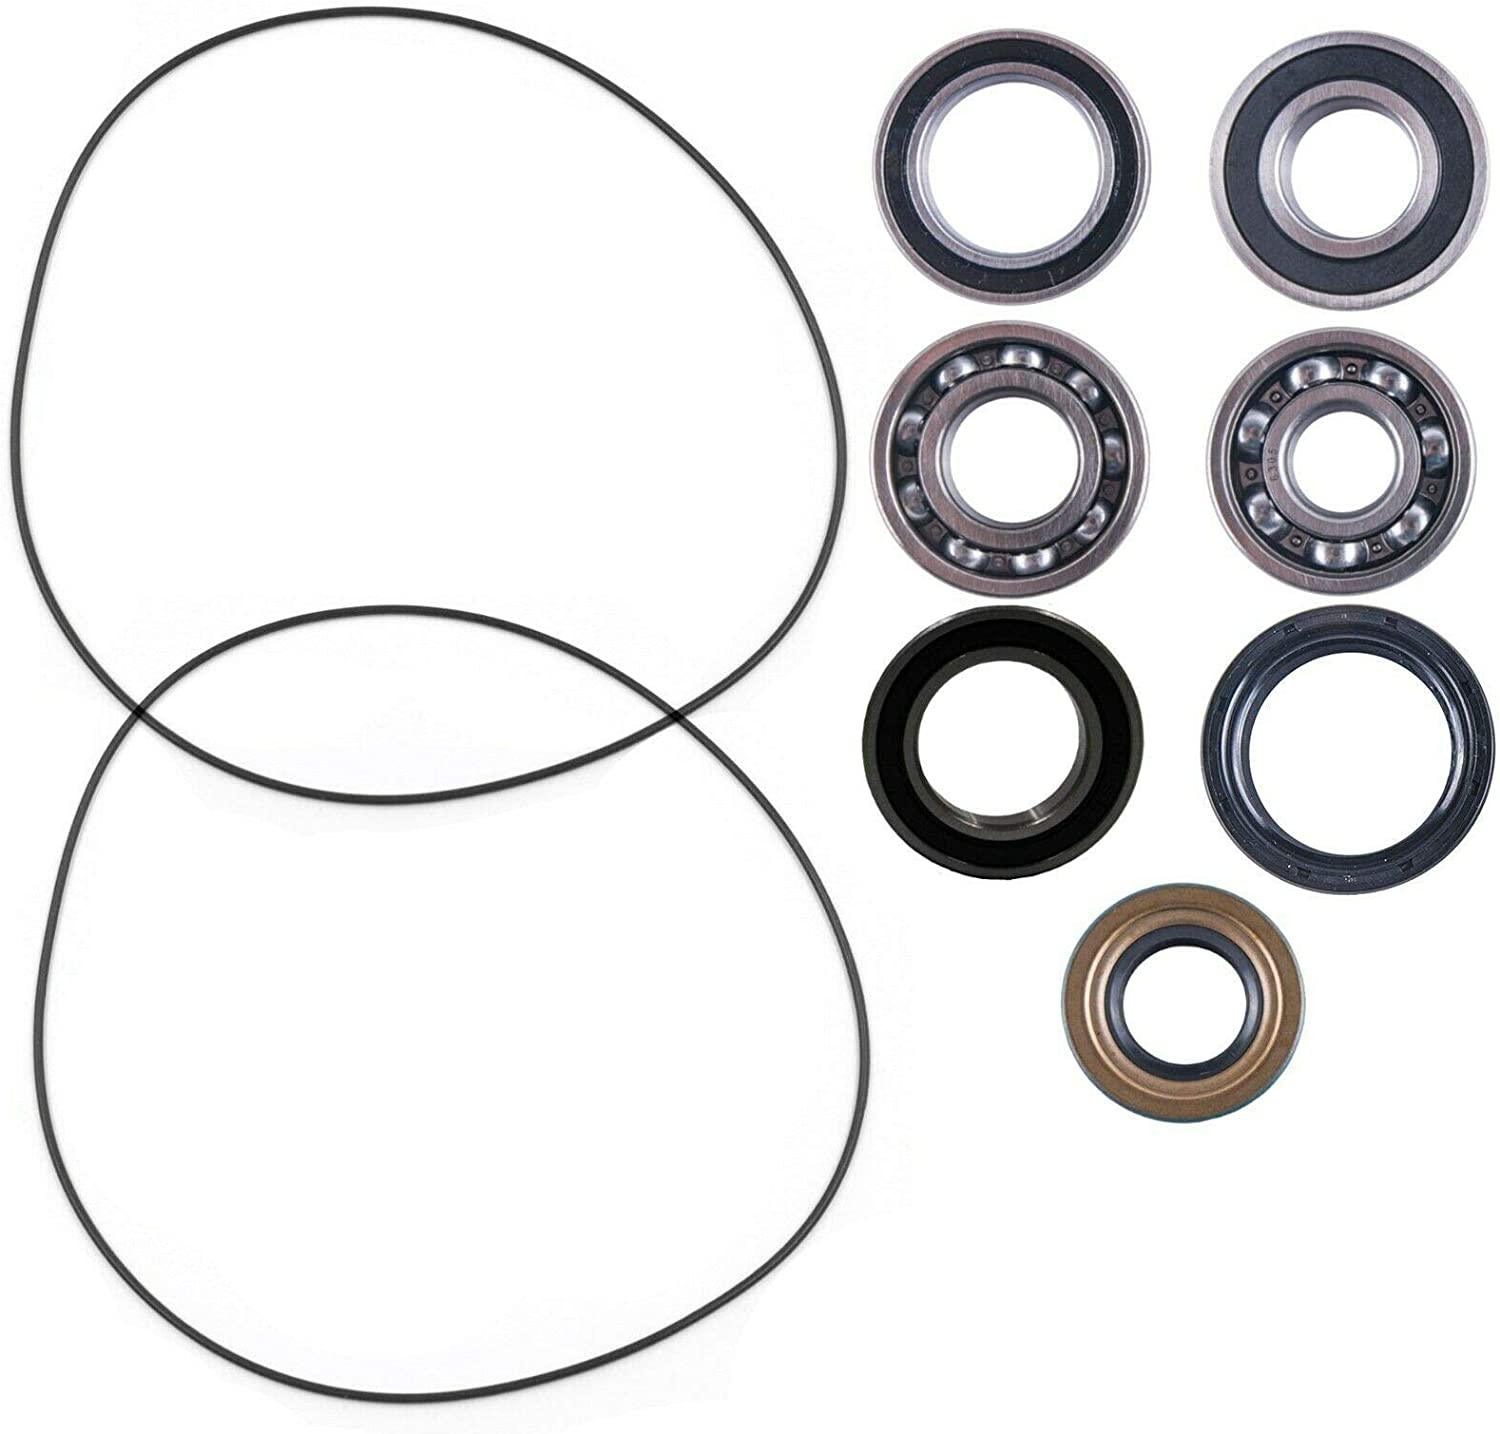 East Lake Axle rear wheel bearings kit compatible with Can Am Outlander//Max 500//650 800 2006-2012